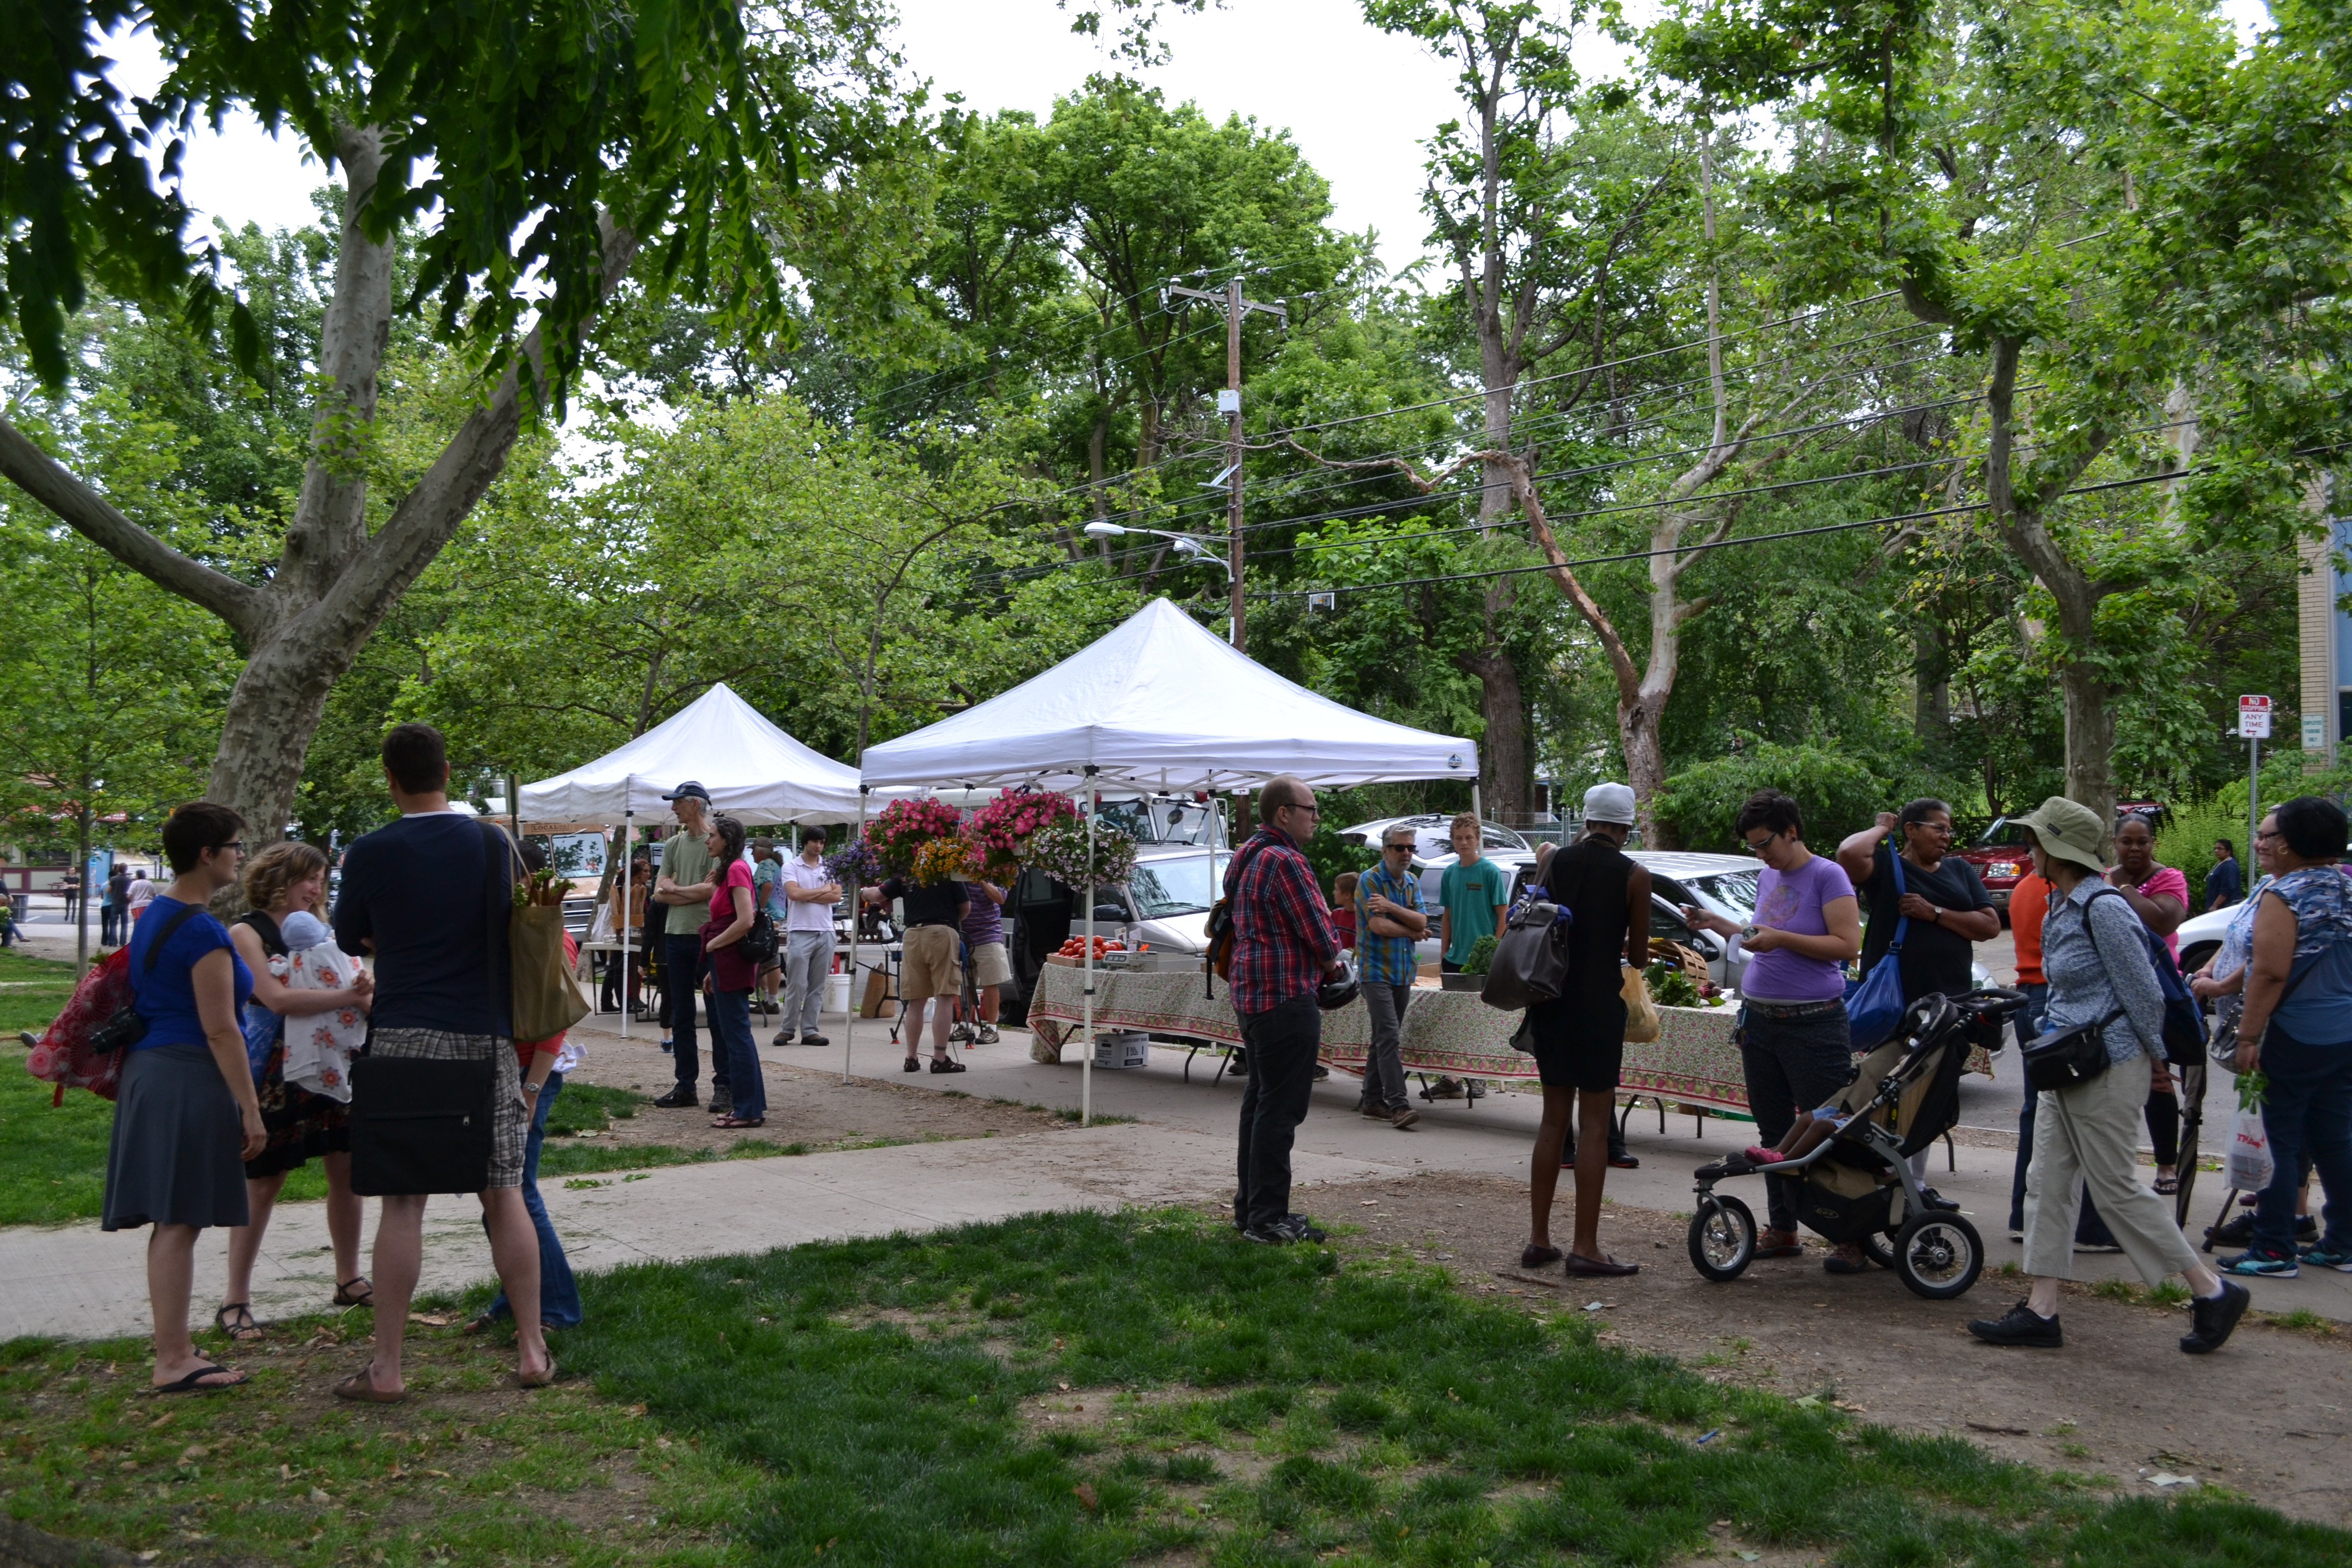 The Thursday farmers' market returned to Clark Park this week